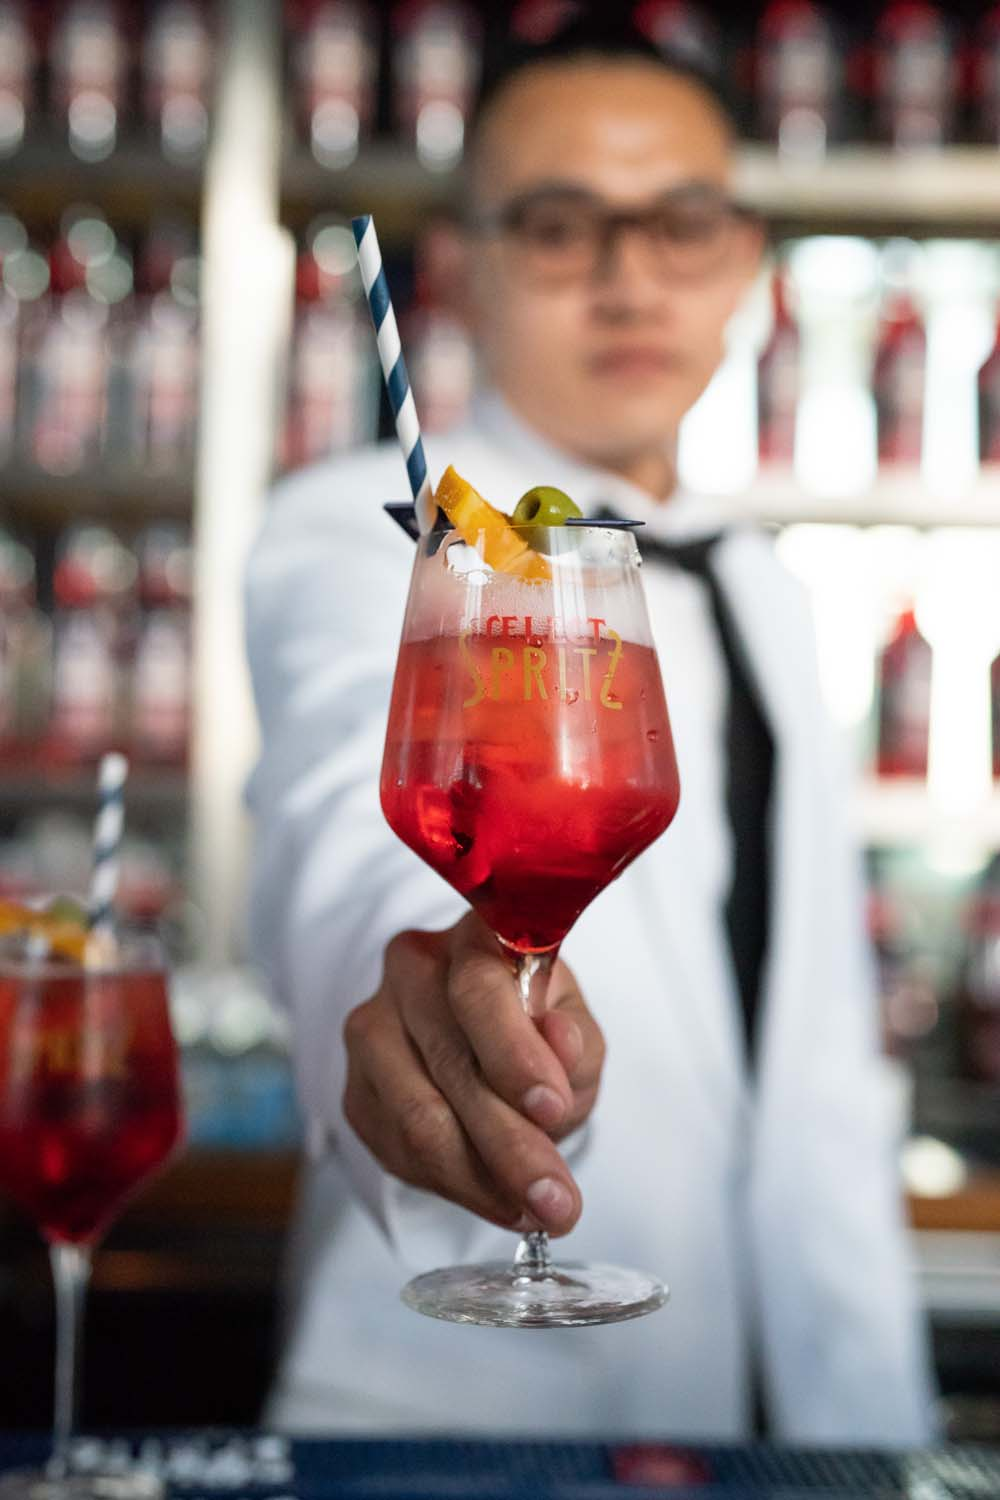 Mixologist in Tuxedo with cocktail